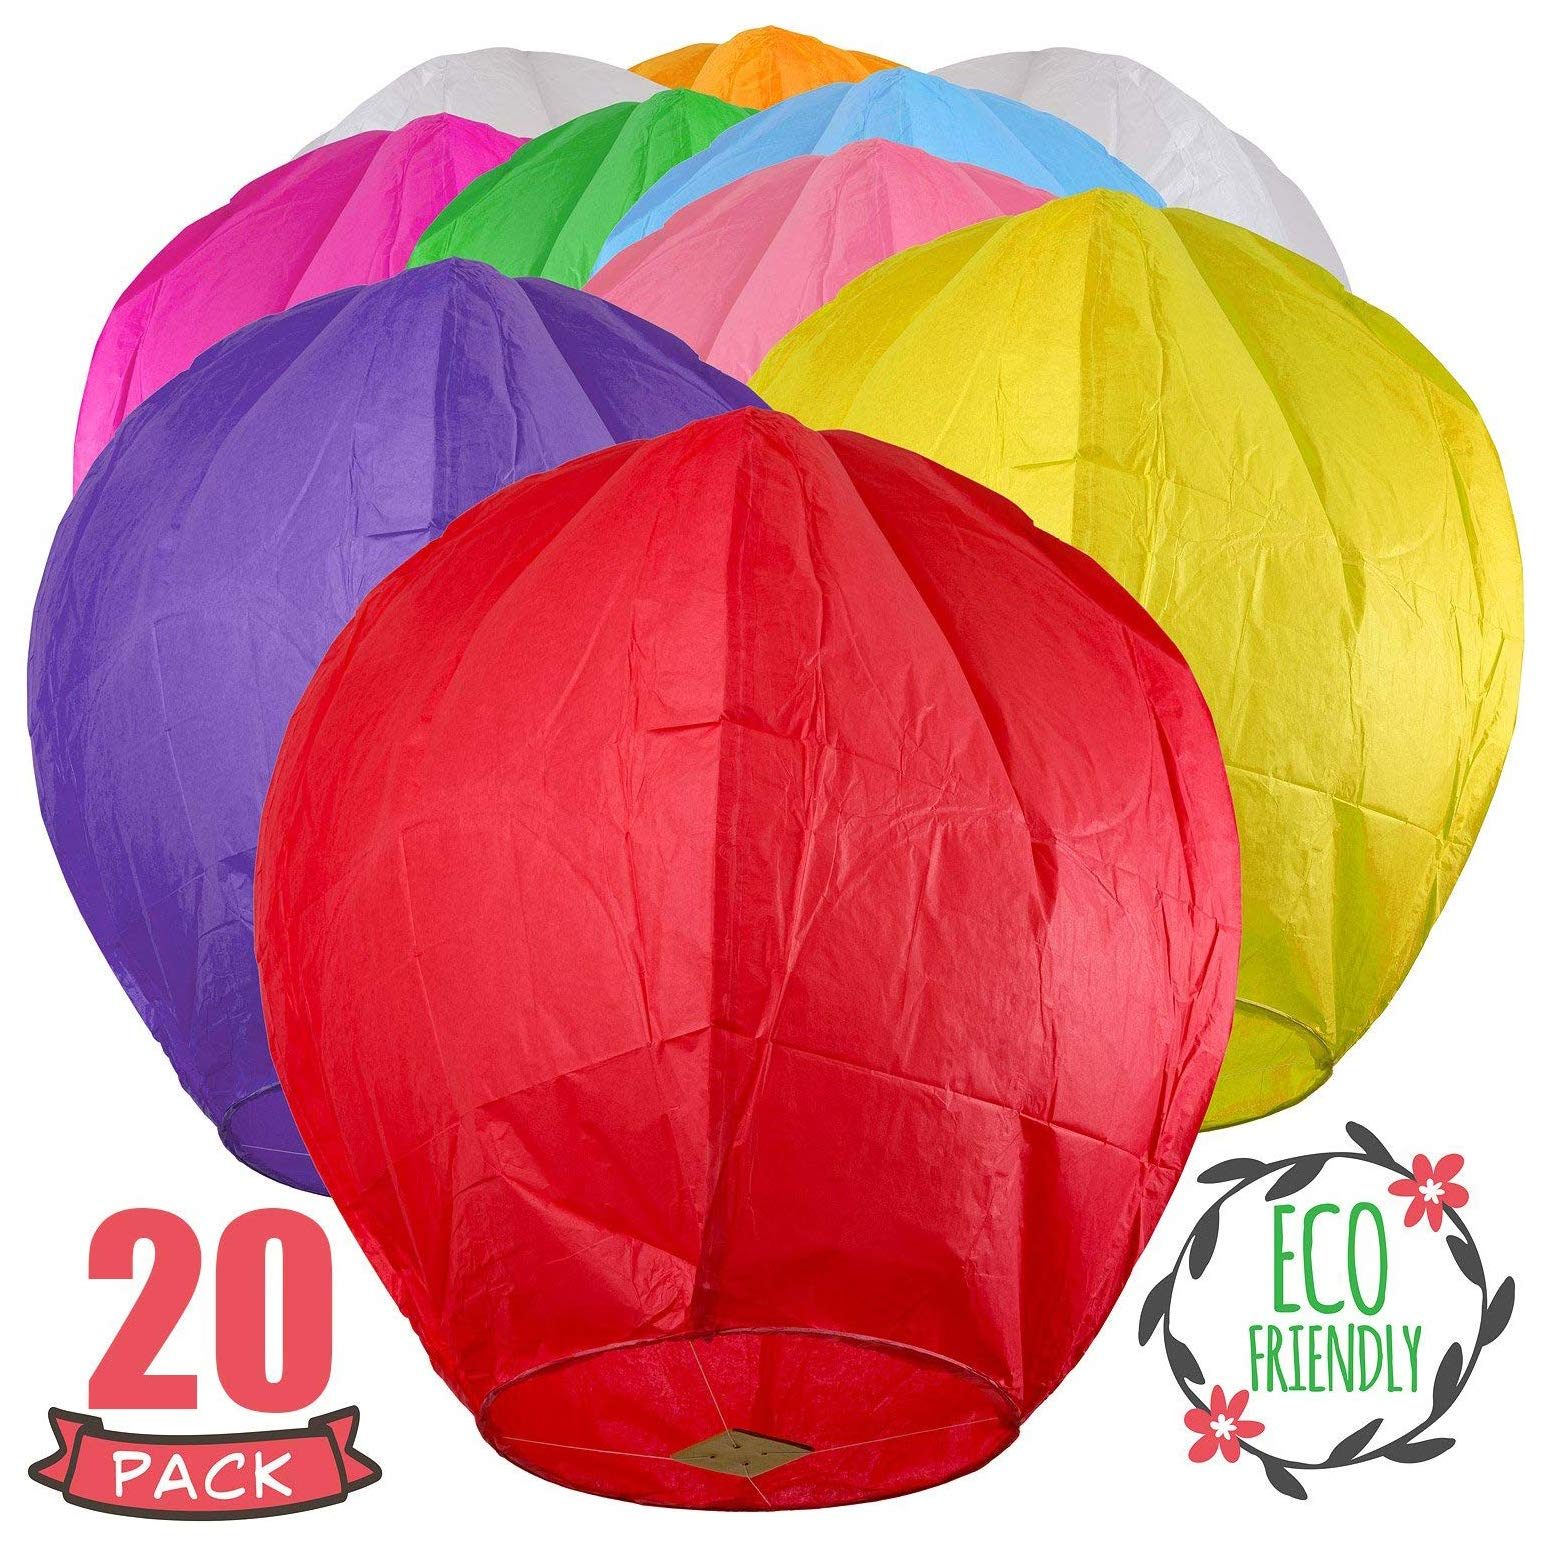 SKY HIGH 20 Pack Colorful Chinese Lanterns - Biodegradable Paper Lanterns Multi-Color Assortment for Birthdays, Parties, New Years, Memorial Ceremonies and More by SKY HIGH